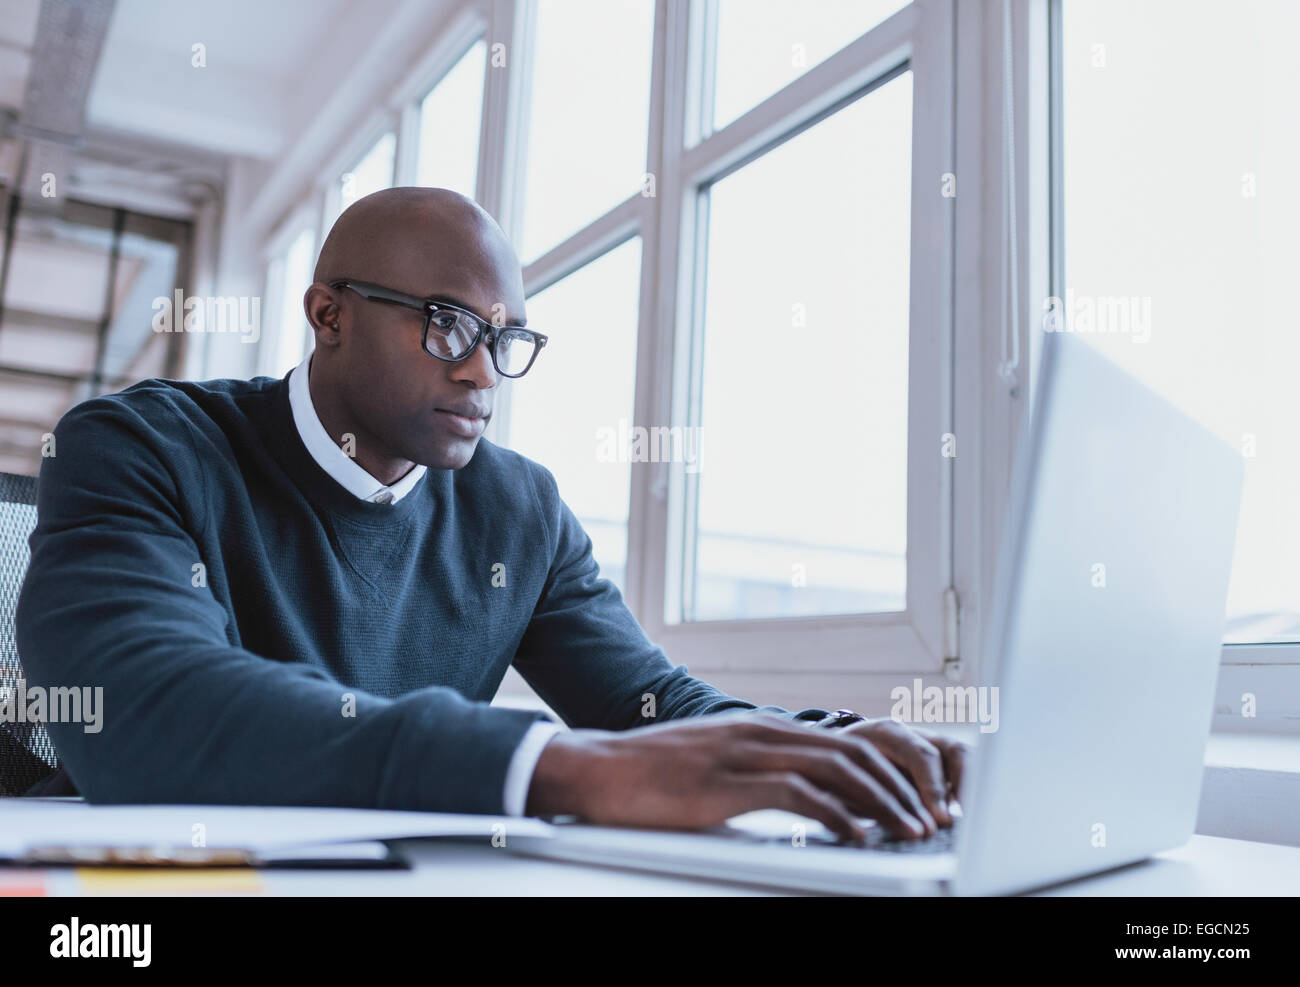 Image of african american businessman working on his laptop. Handsome young man at his desk. - Stock Image